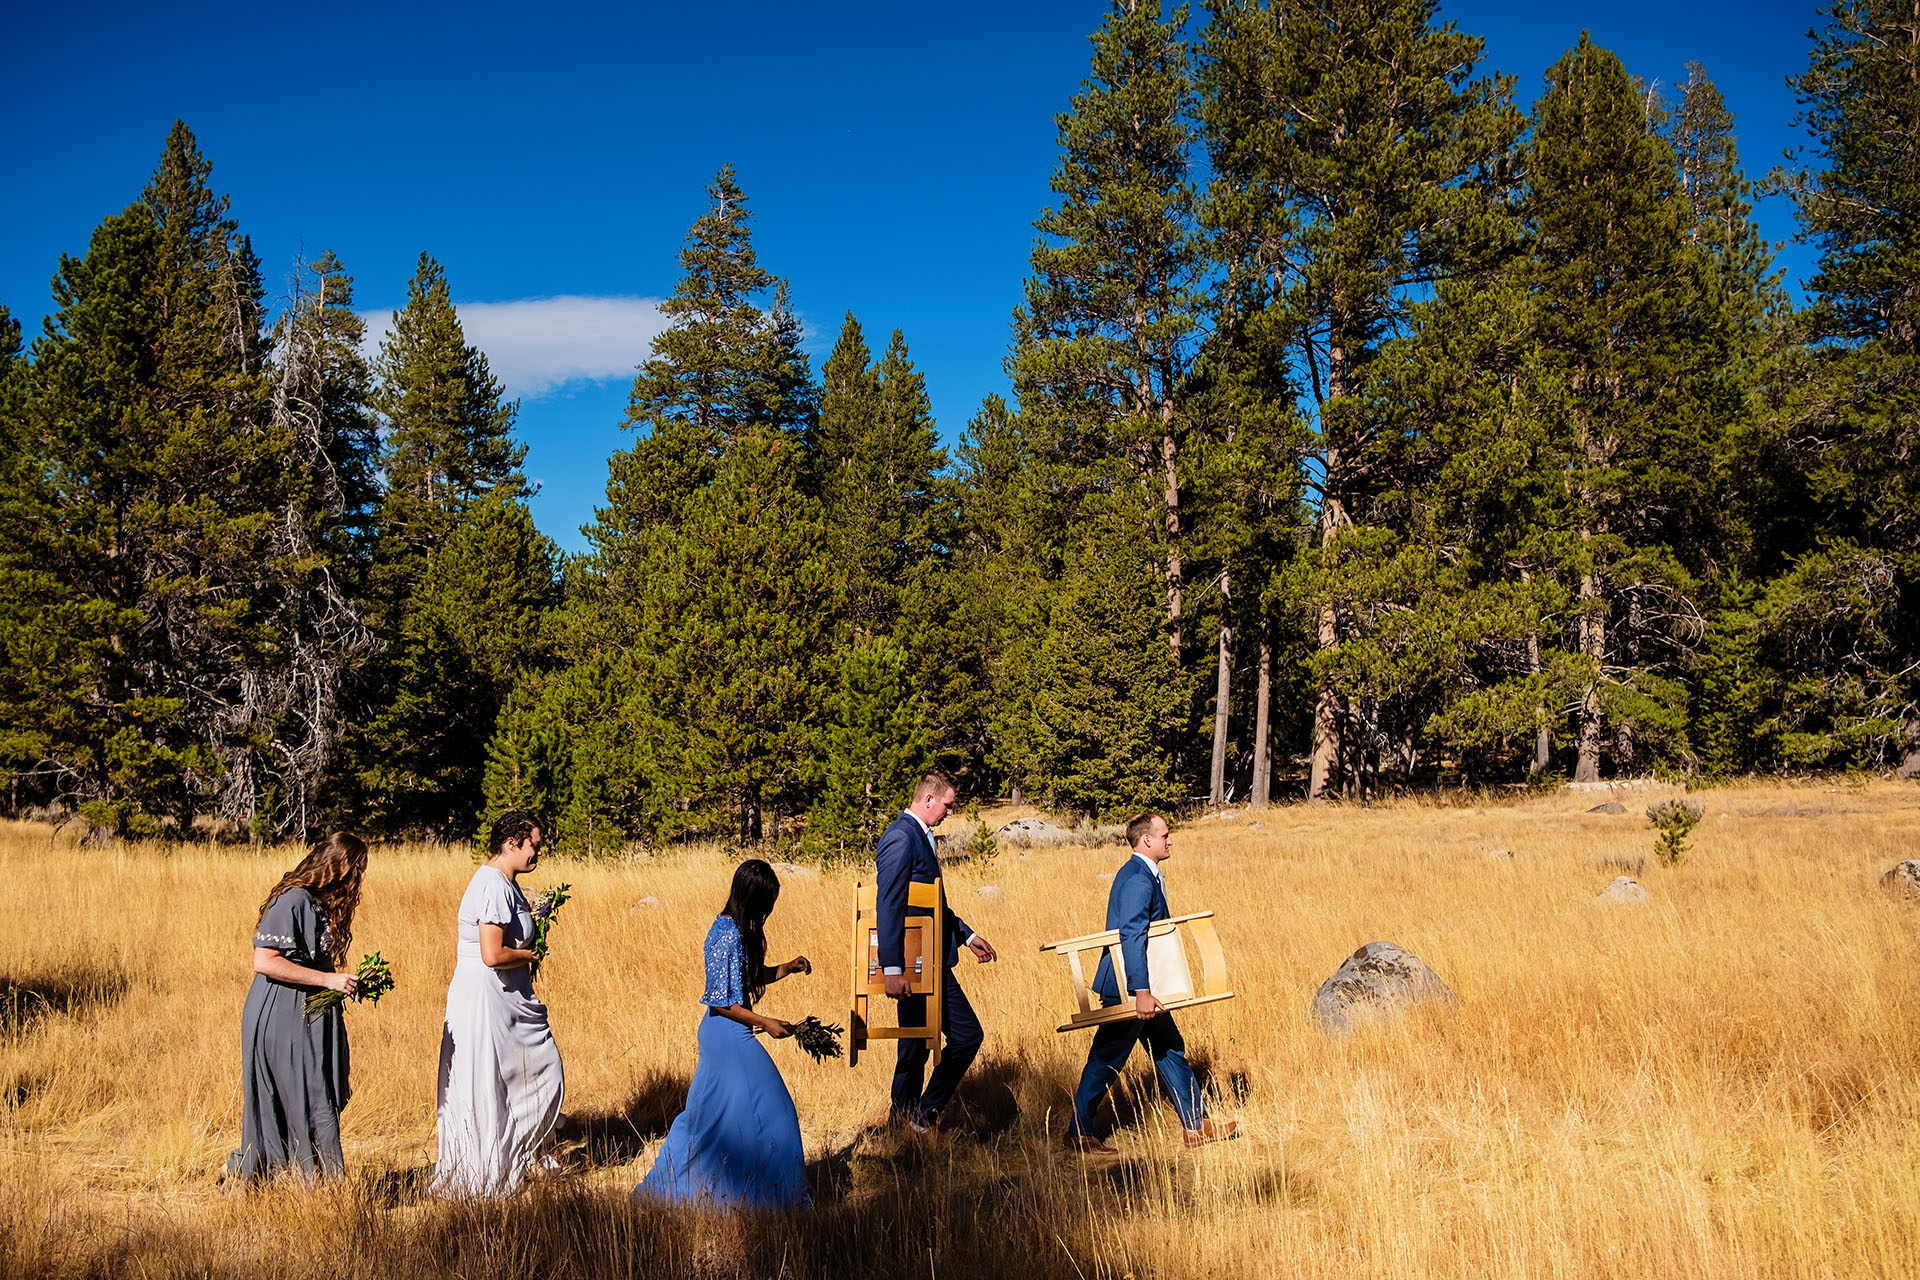 Shaunte Dittmar, of California, is a wedding photographer for Lake Tahoe, Ca